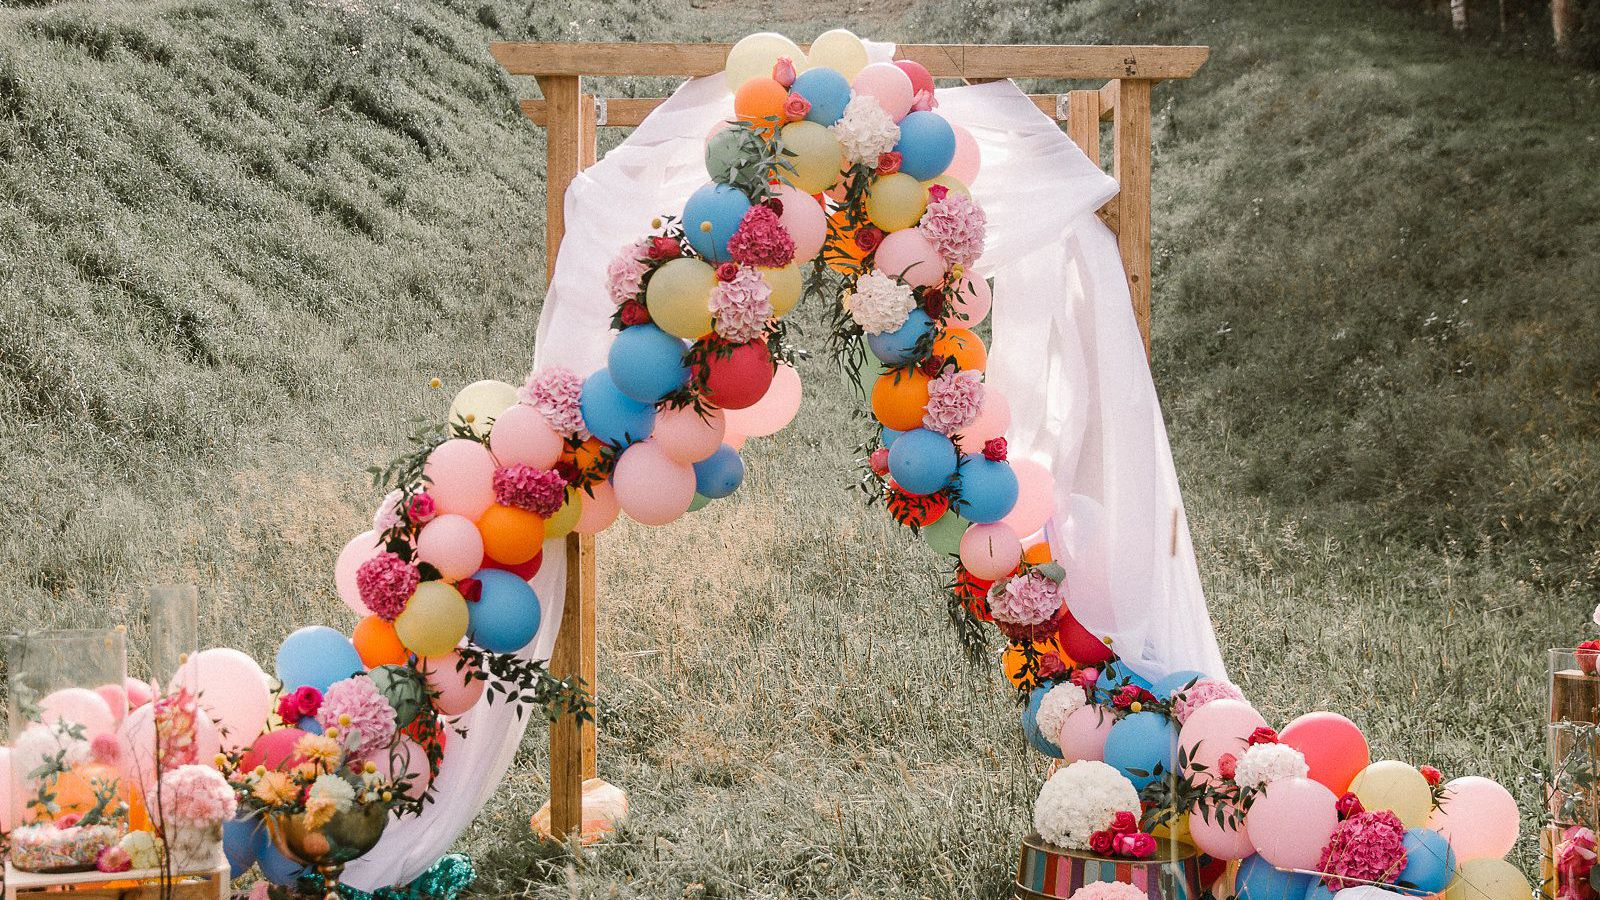 18 Wedding Themes for Any Style